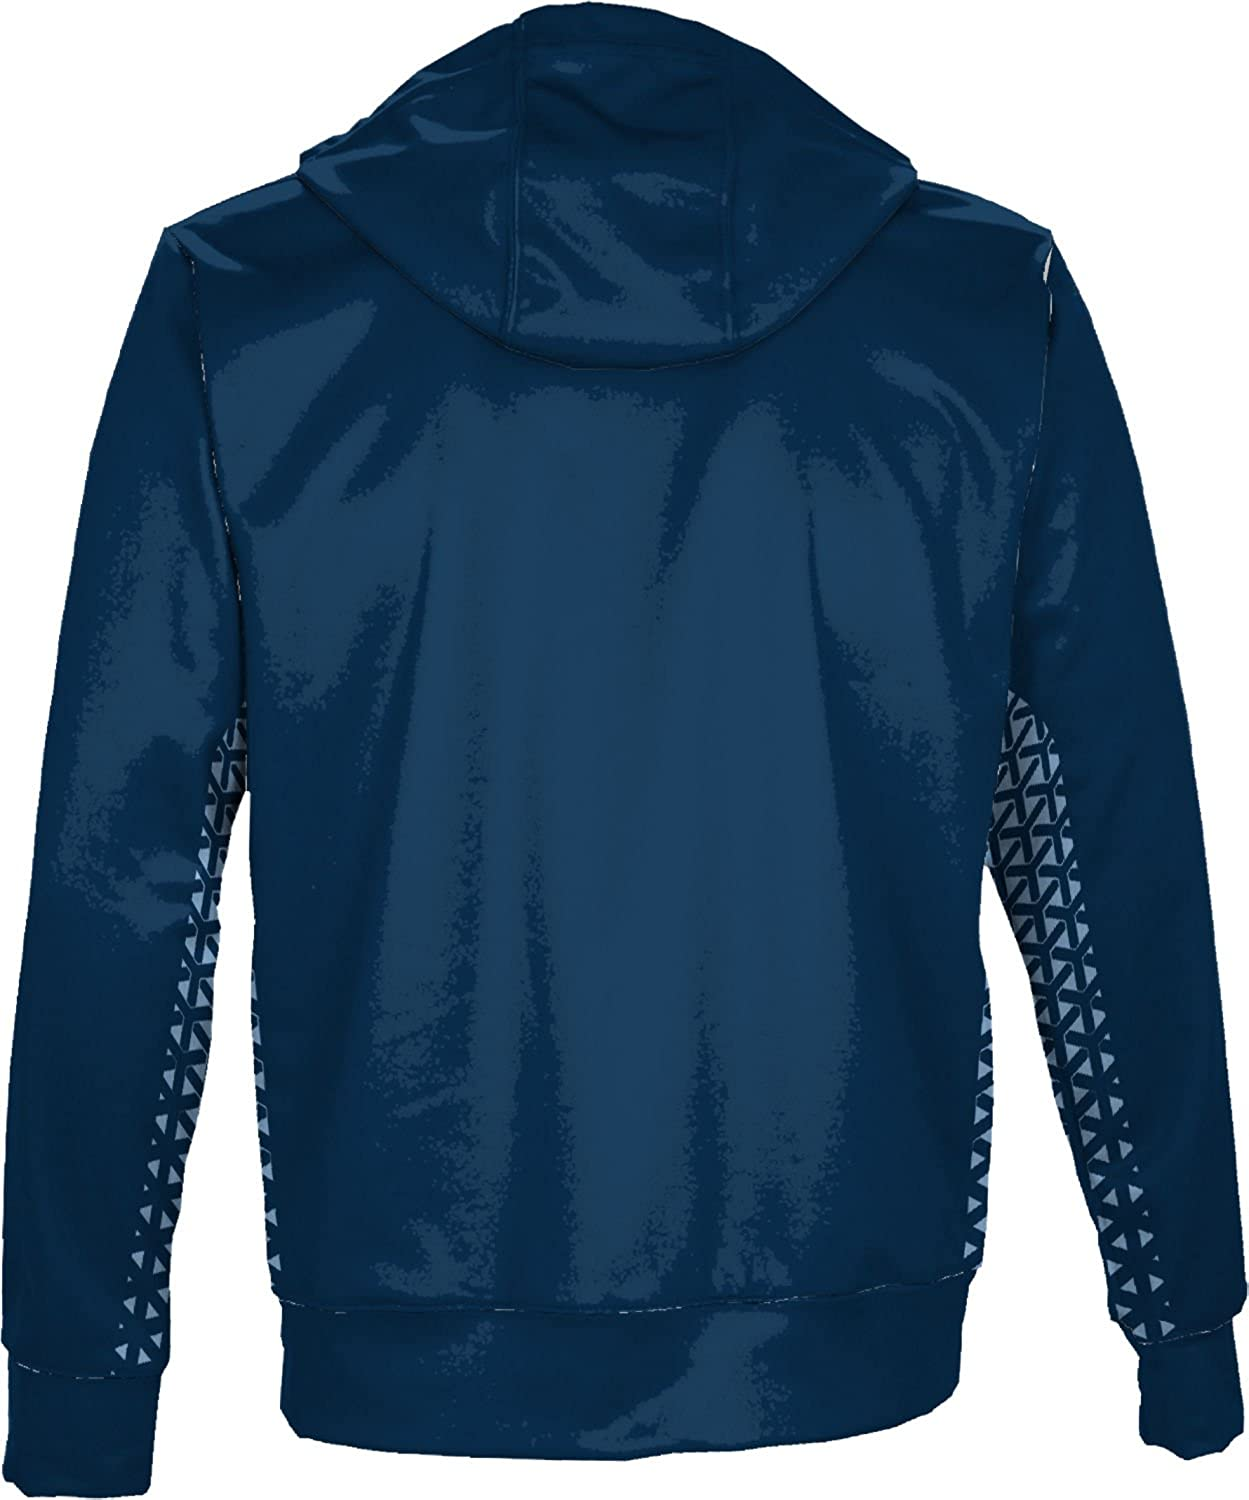 Geo ProSphere Old Dominion University Boys Fullzip Hoodie